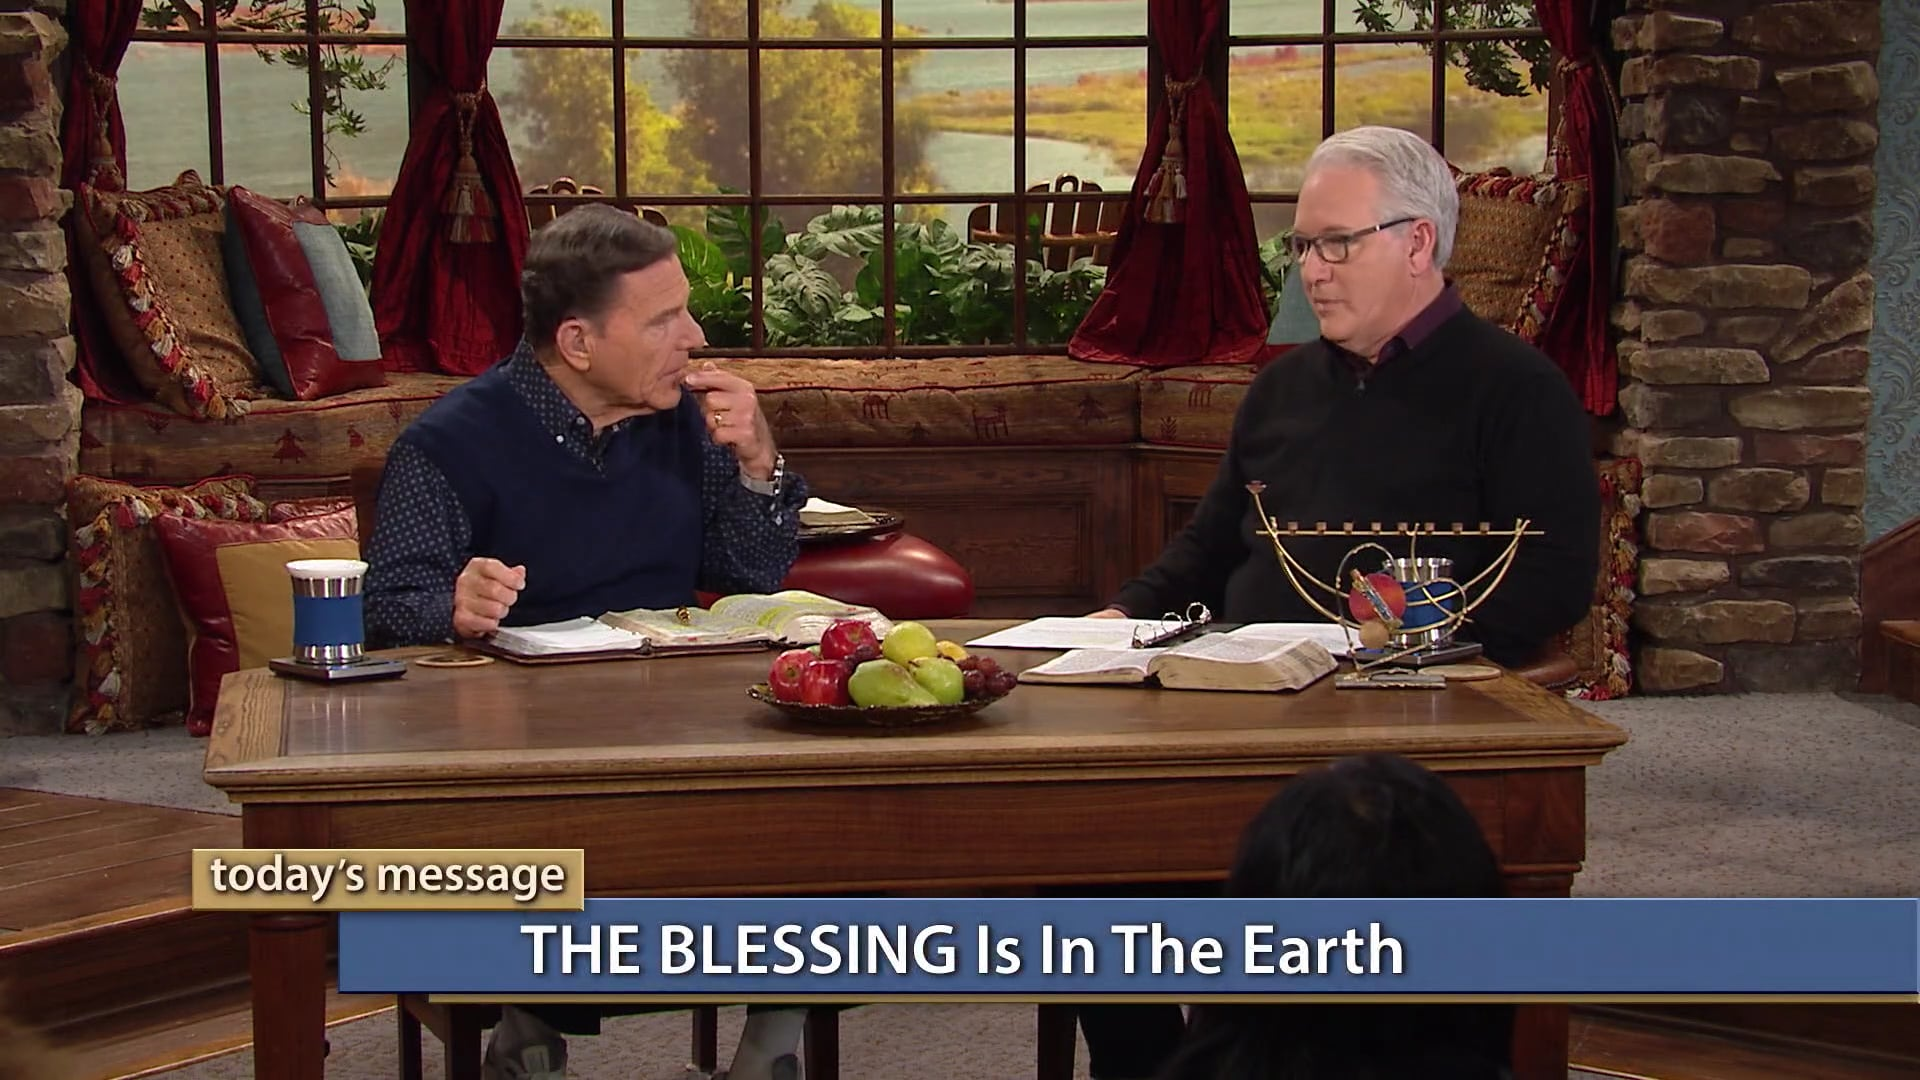 A blood covenant is why THE BLESSING is in the earth! Join Kenneth Copeland and Professor Greg Stephens on Believer's Voice of Victory as they explain the significance between Jewish holidays and the conception and birth of Jesus. Learn how precise the Father was in the details and why the heavens rejoiced that THE BLESSING had come into the earth!